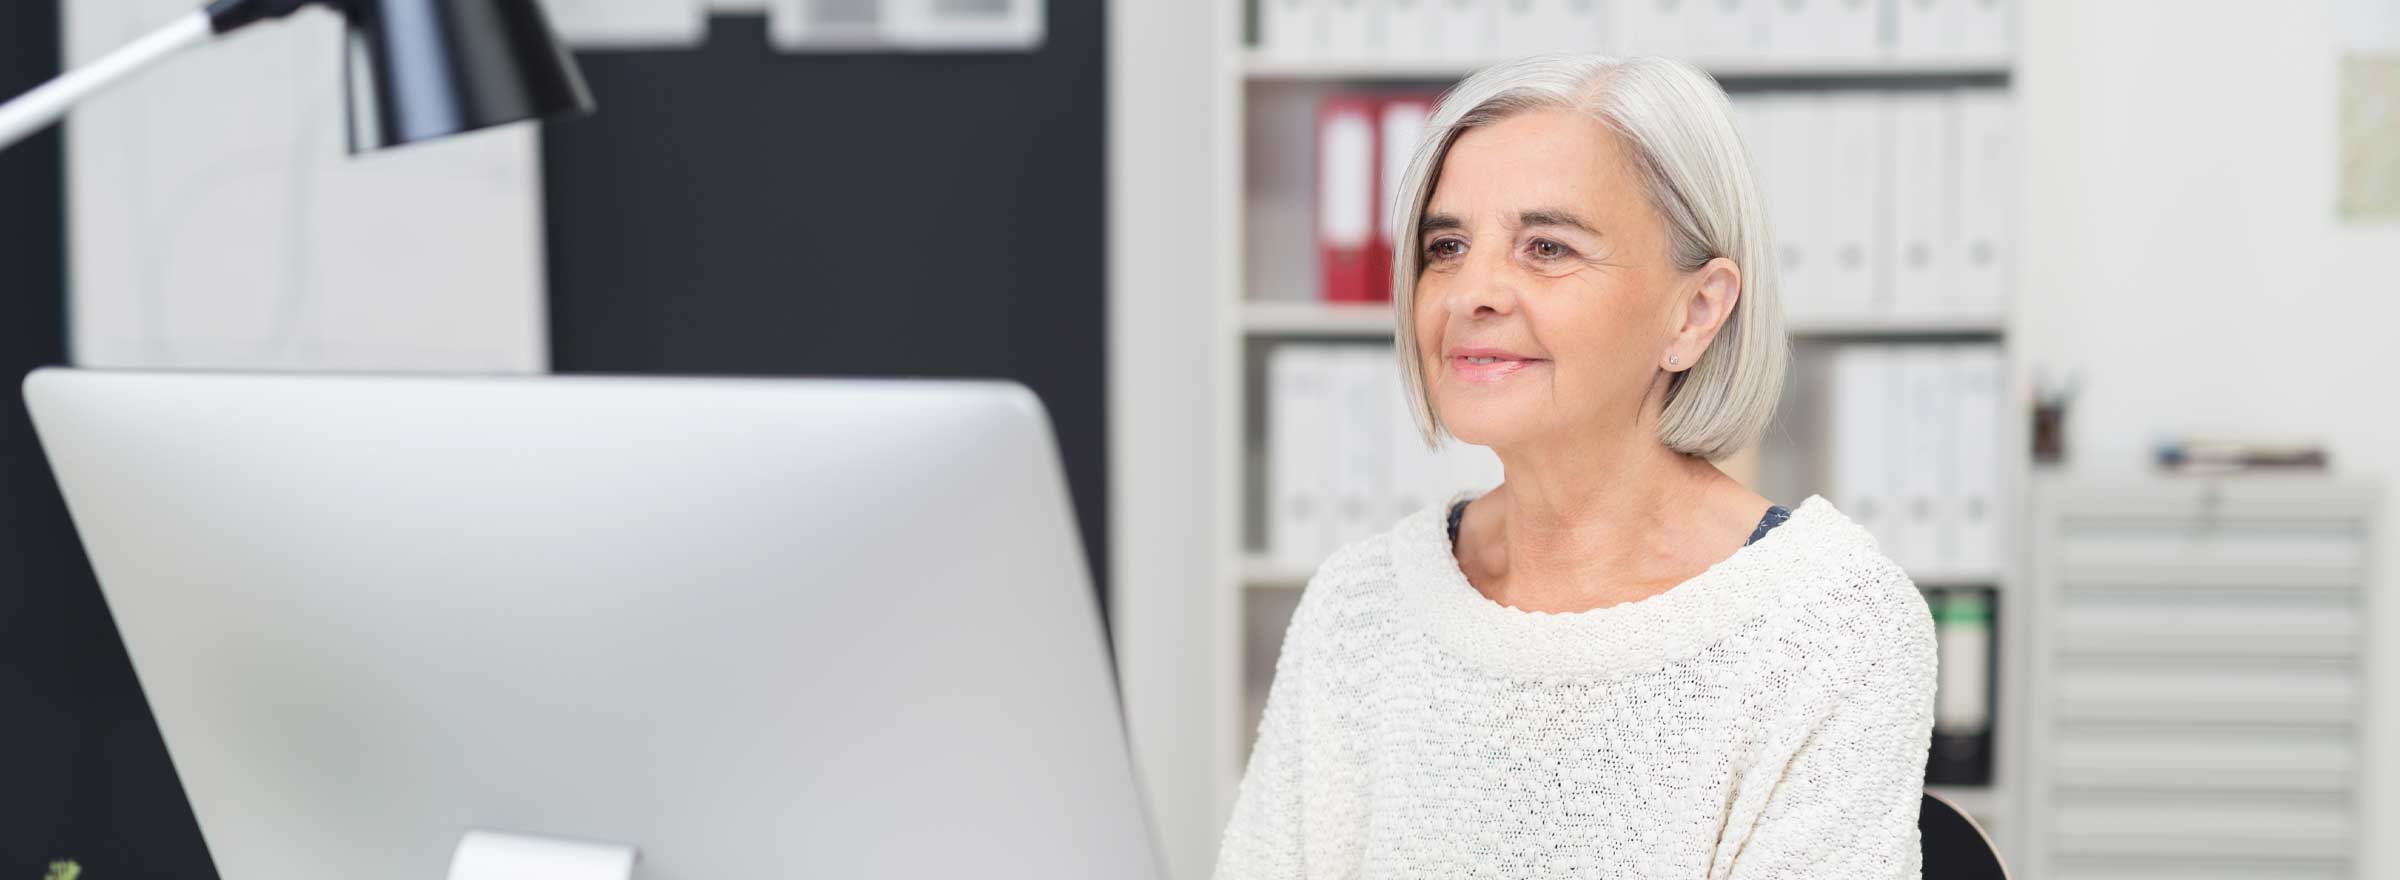 woman slightly smiling at a computer screen